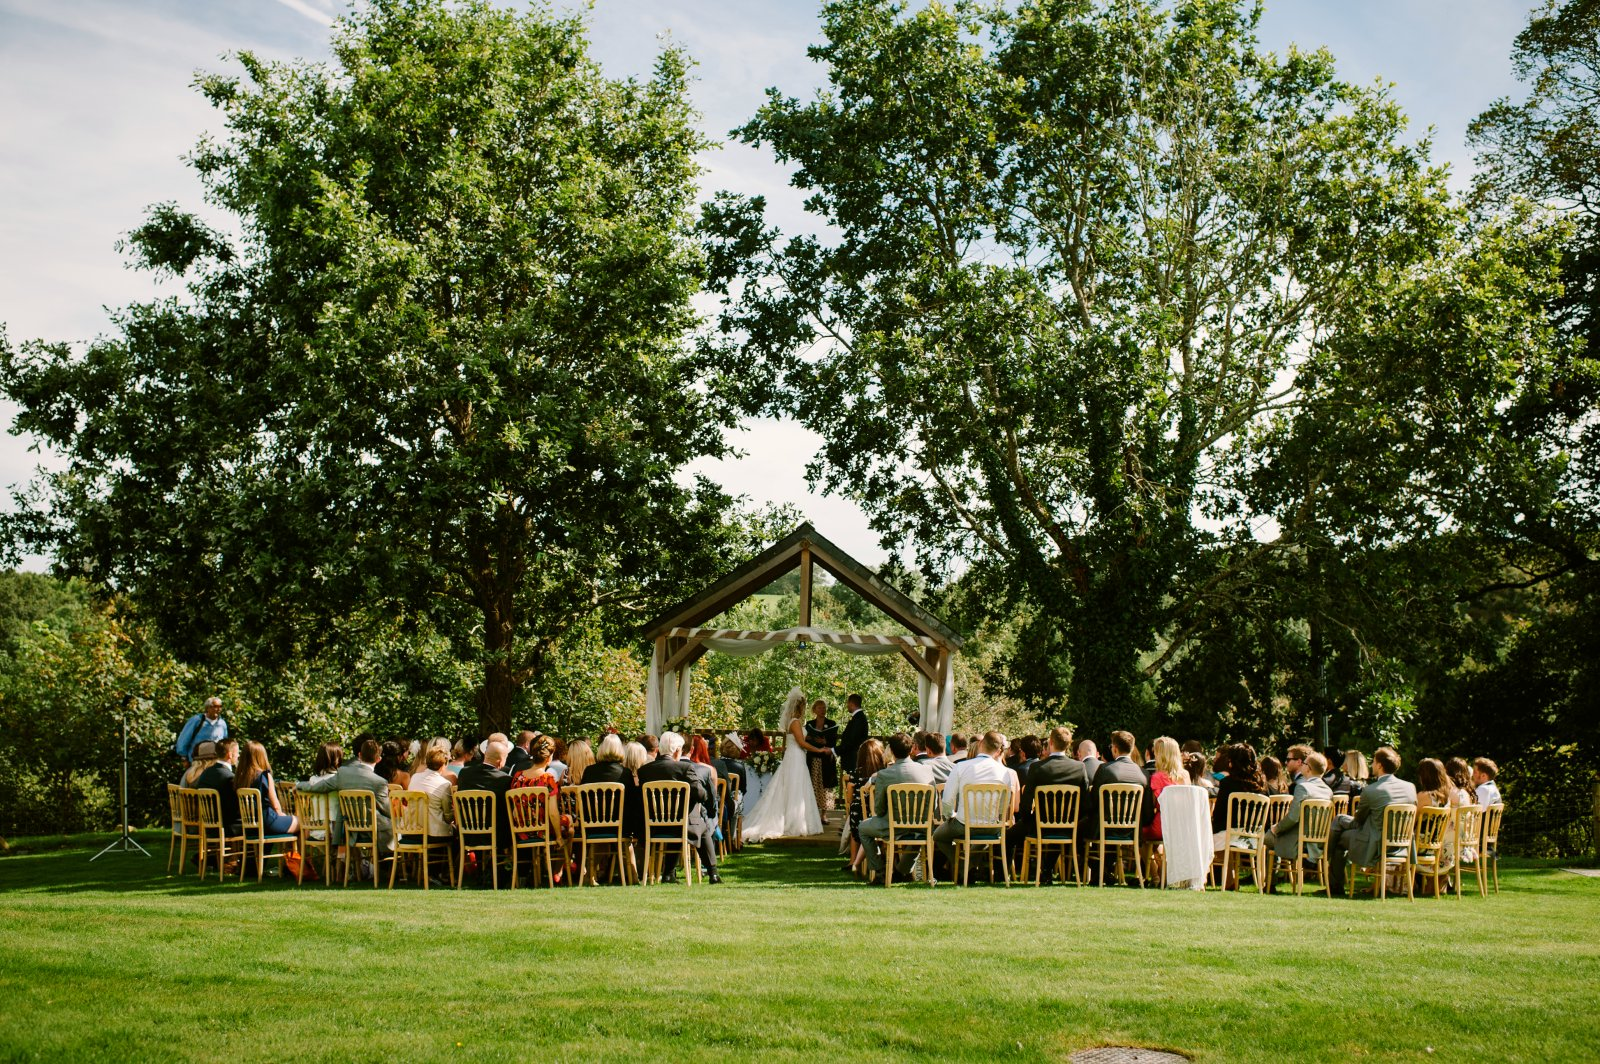 The Green wedding venue in Cornwall